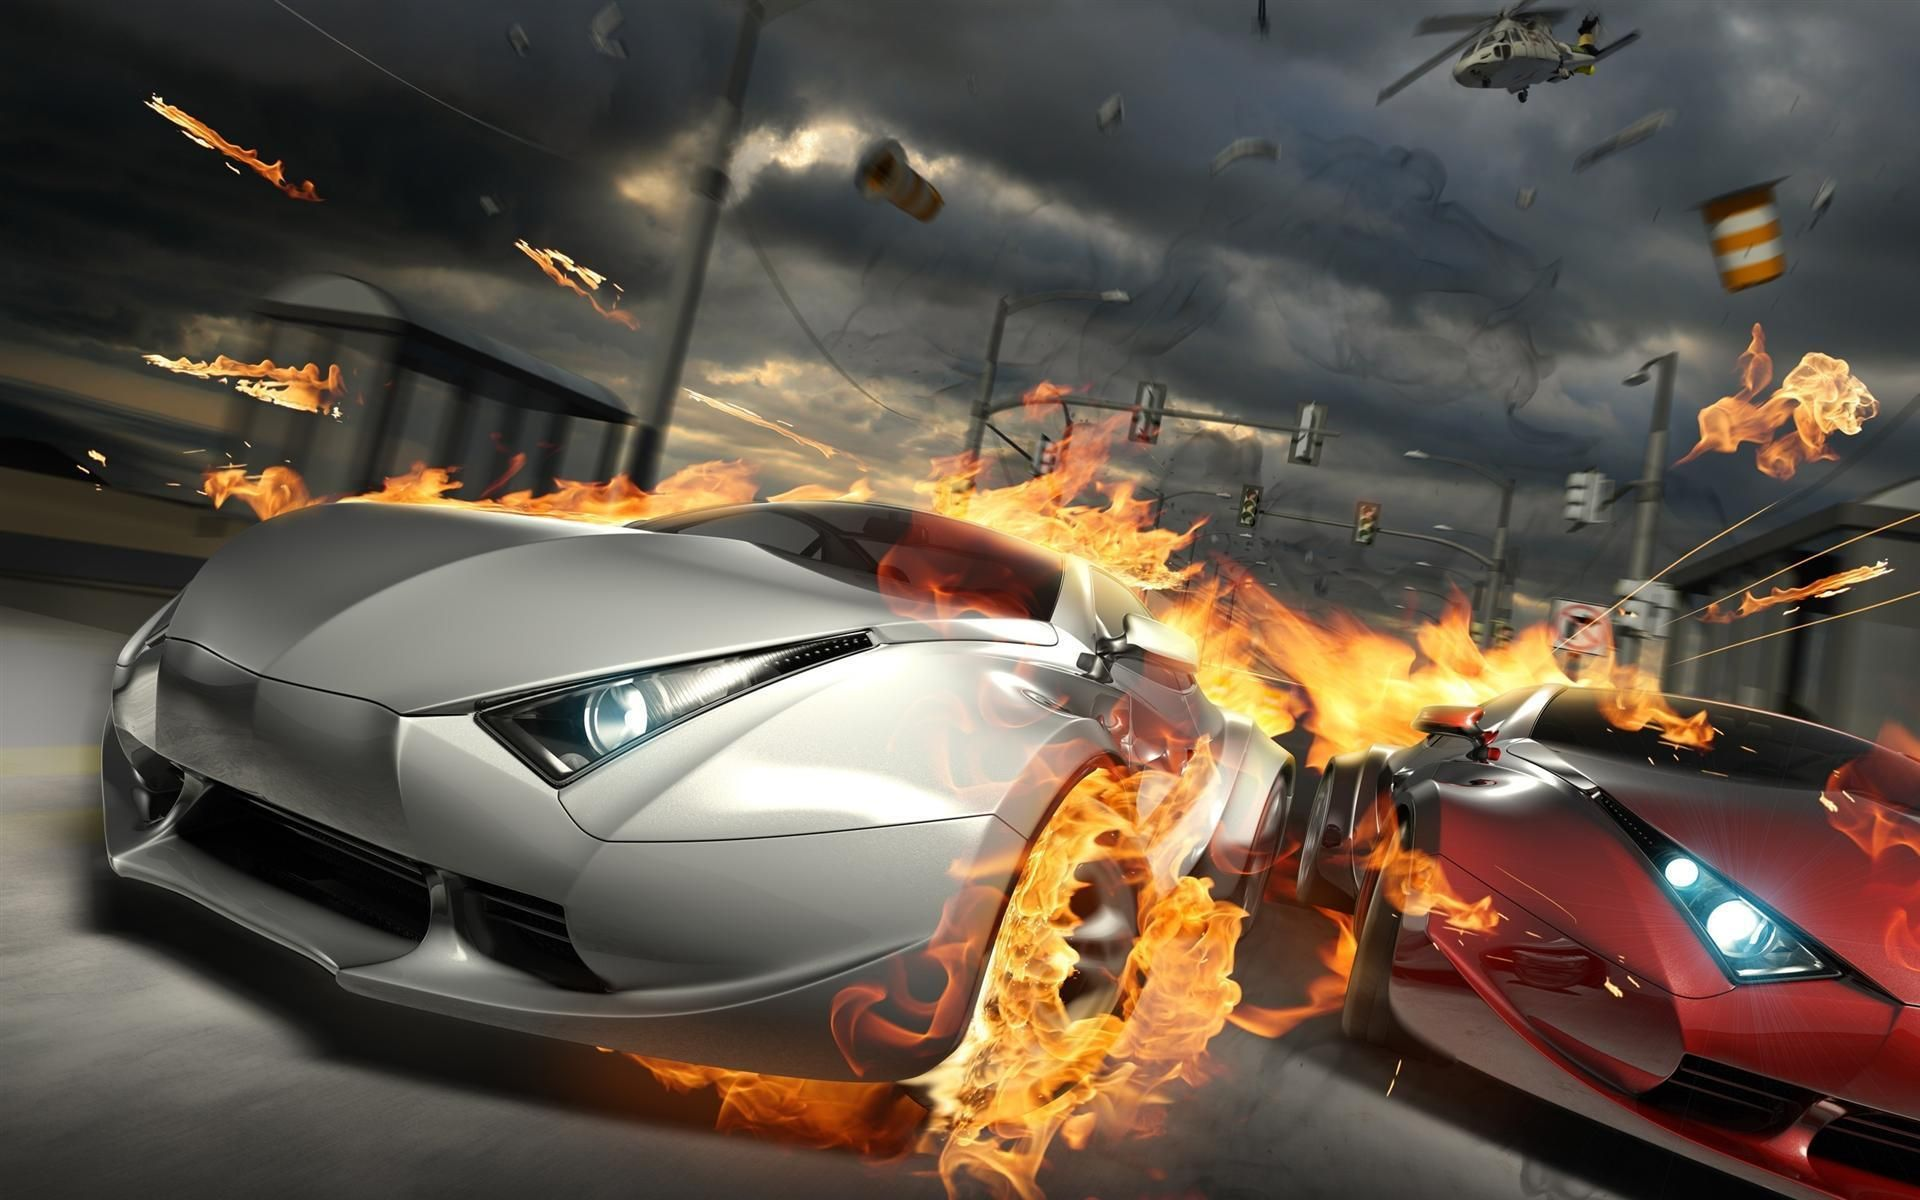 wallpaper fire cars cars hd wallpaper 1920x1200 px | wallpaper